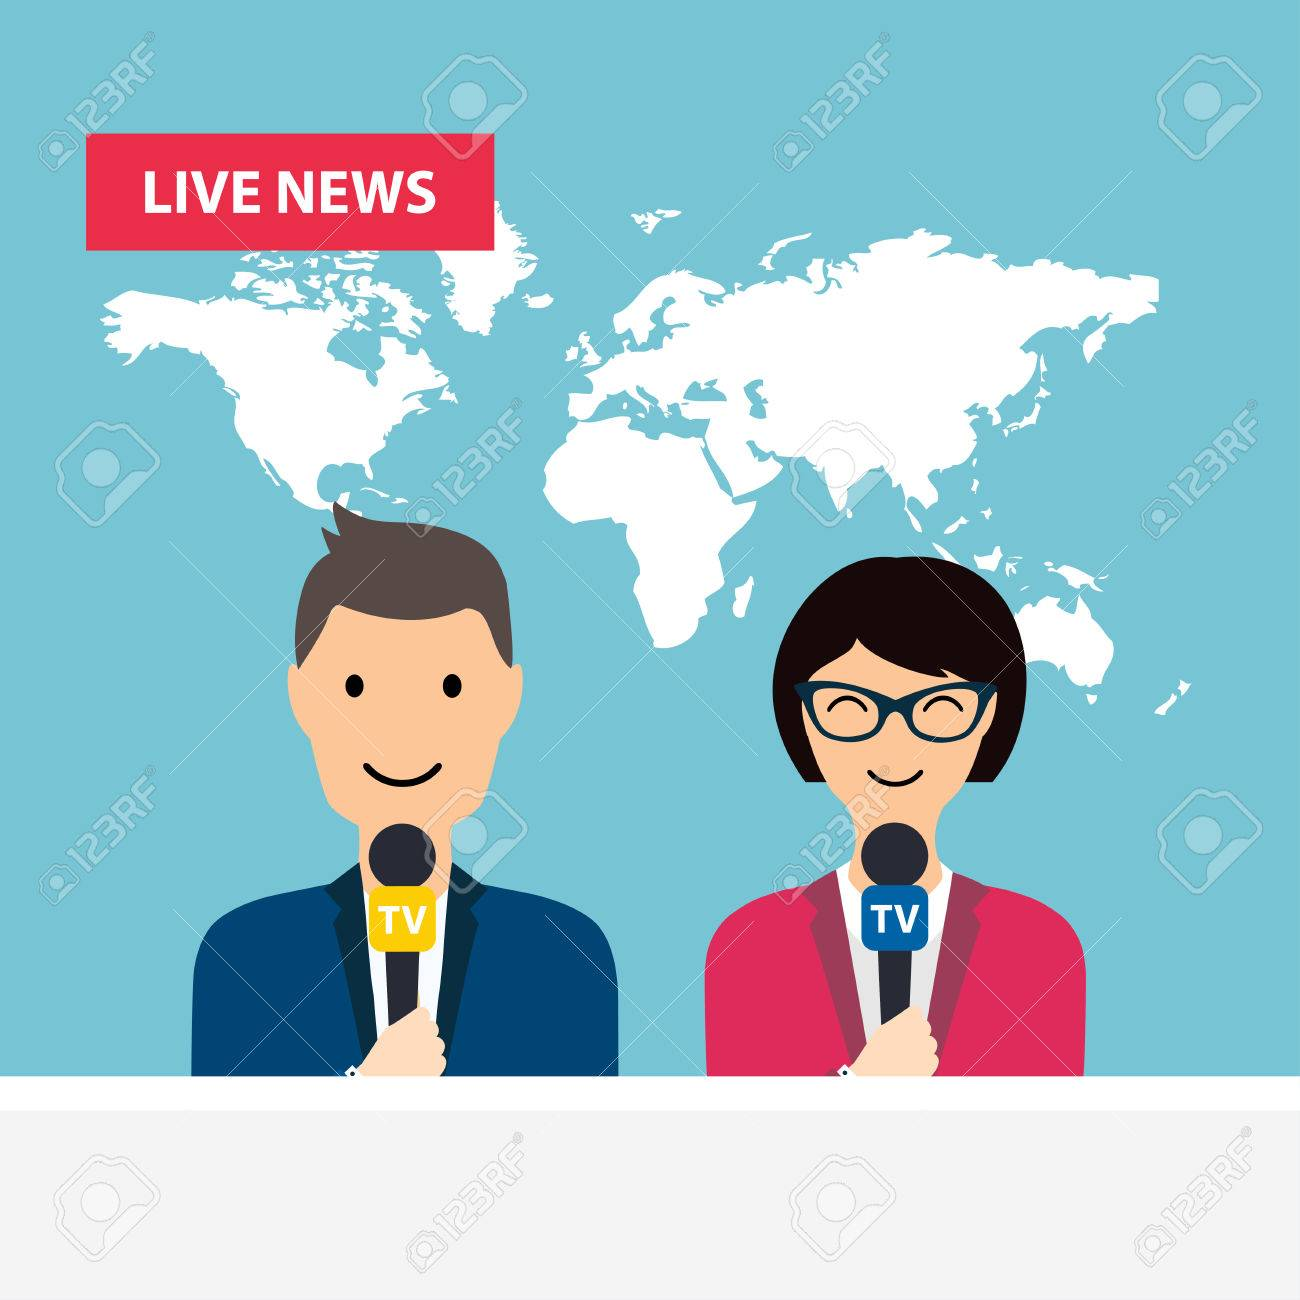 Female And Male TV Presenters Sit At The Table Live News Of